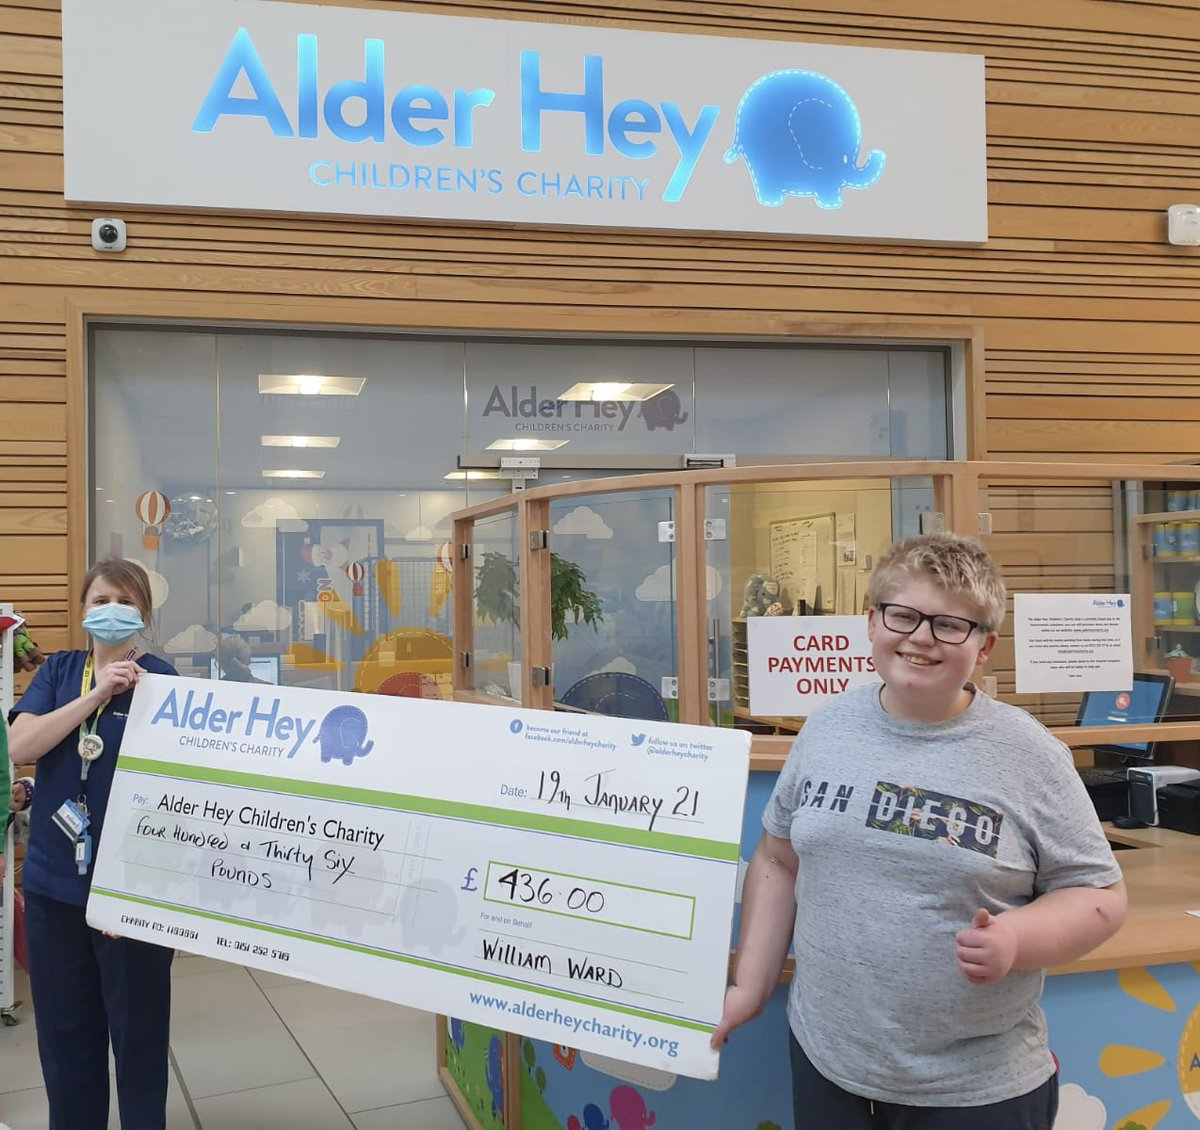 A huge thank you to William, who has raised over £400 for @AlderHeyCharity 💙 He walked a marathon in a month 🚶📆, an amazing achievement given that he has a condition called Prader-Willi syndrome, which means exercise is particularly difficult for him. Wonderful William 👏👏👏